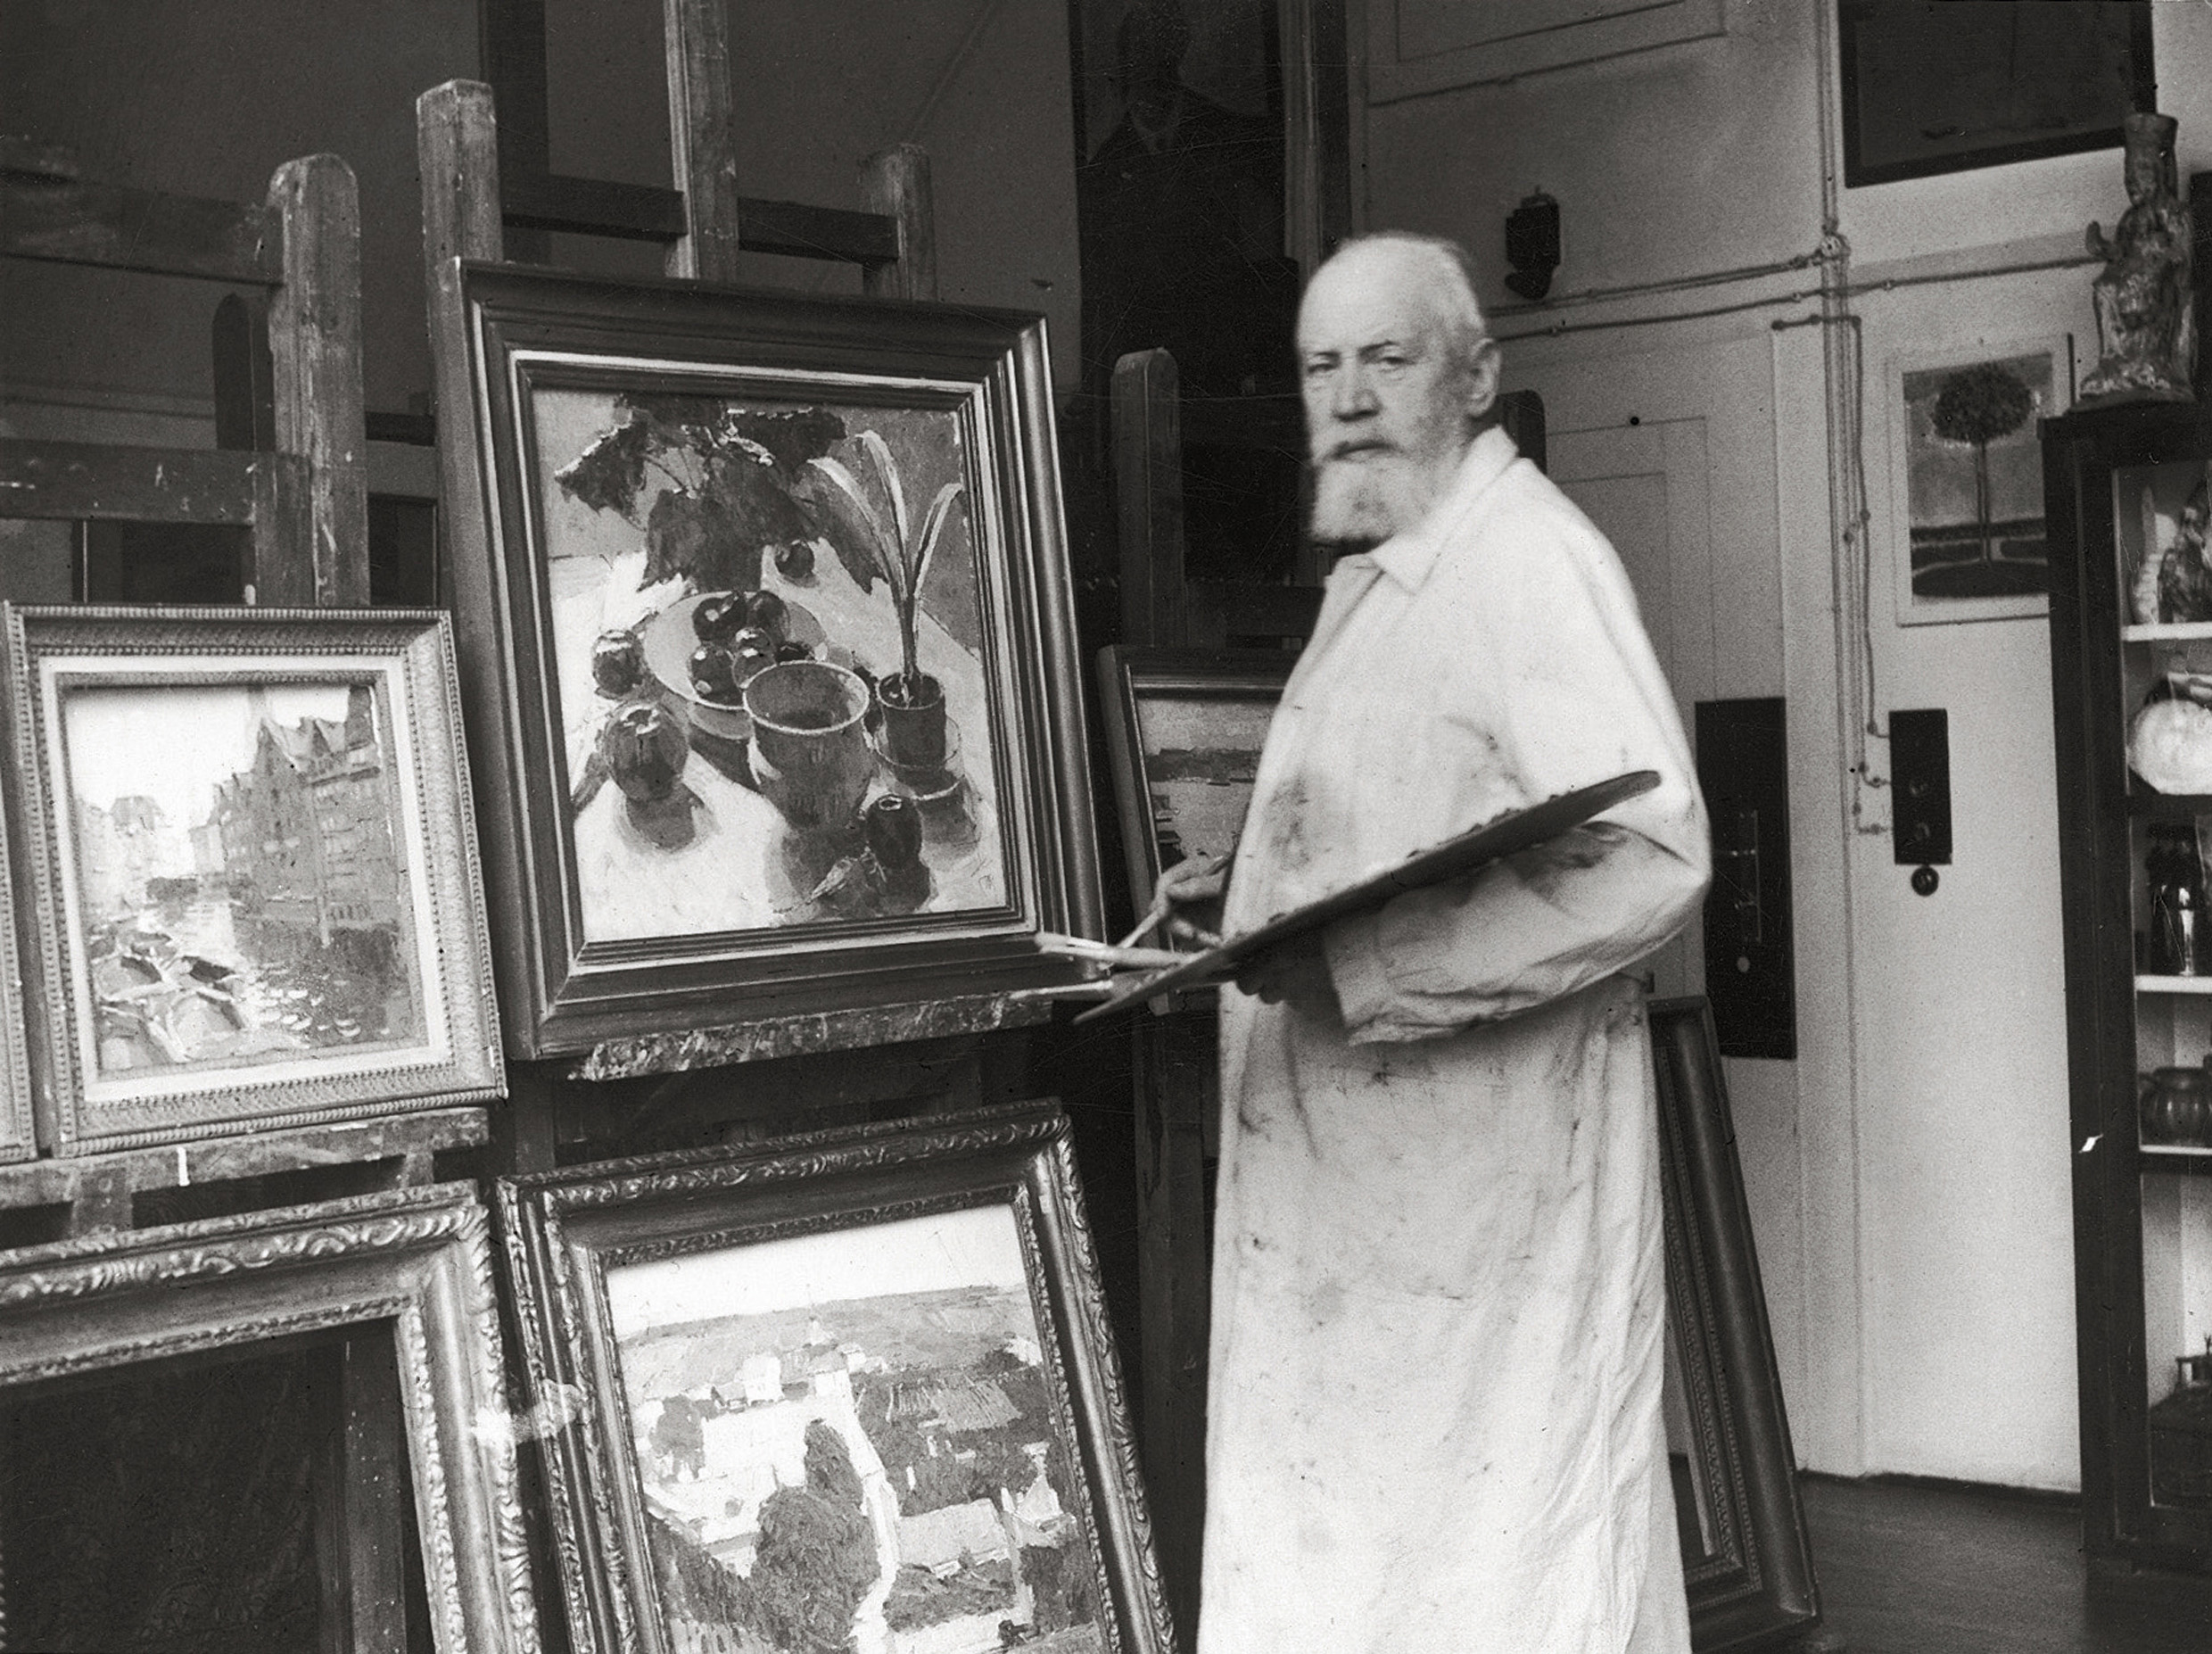 Moll, an unrepentant anti-Semite, helped found the Vienna Secession art movement with Klimt (Imagno/Getty Images)